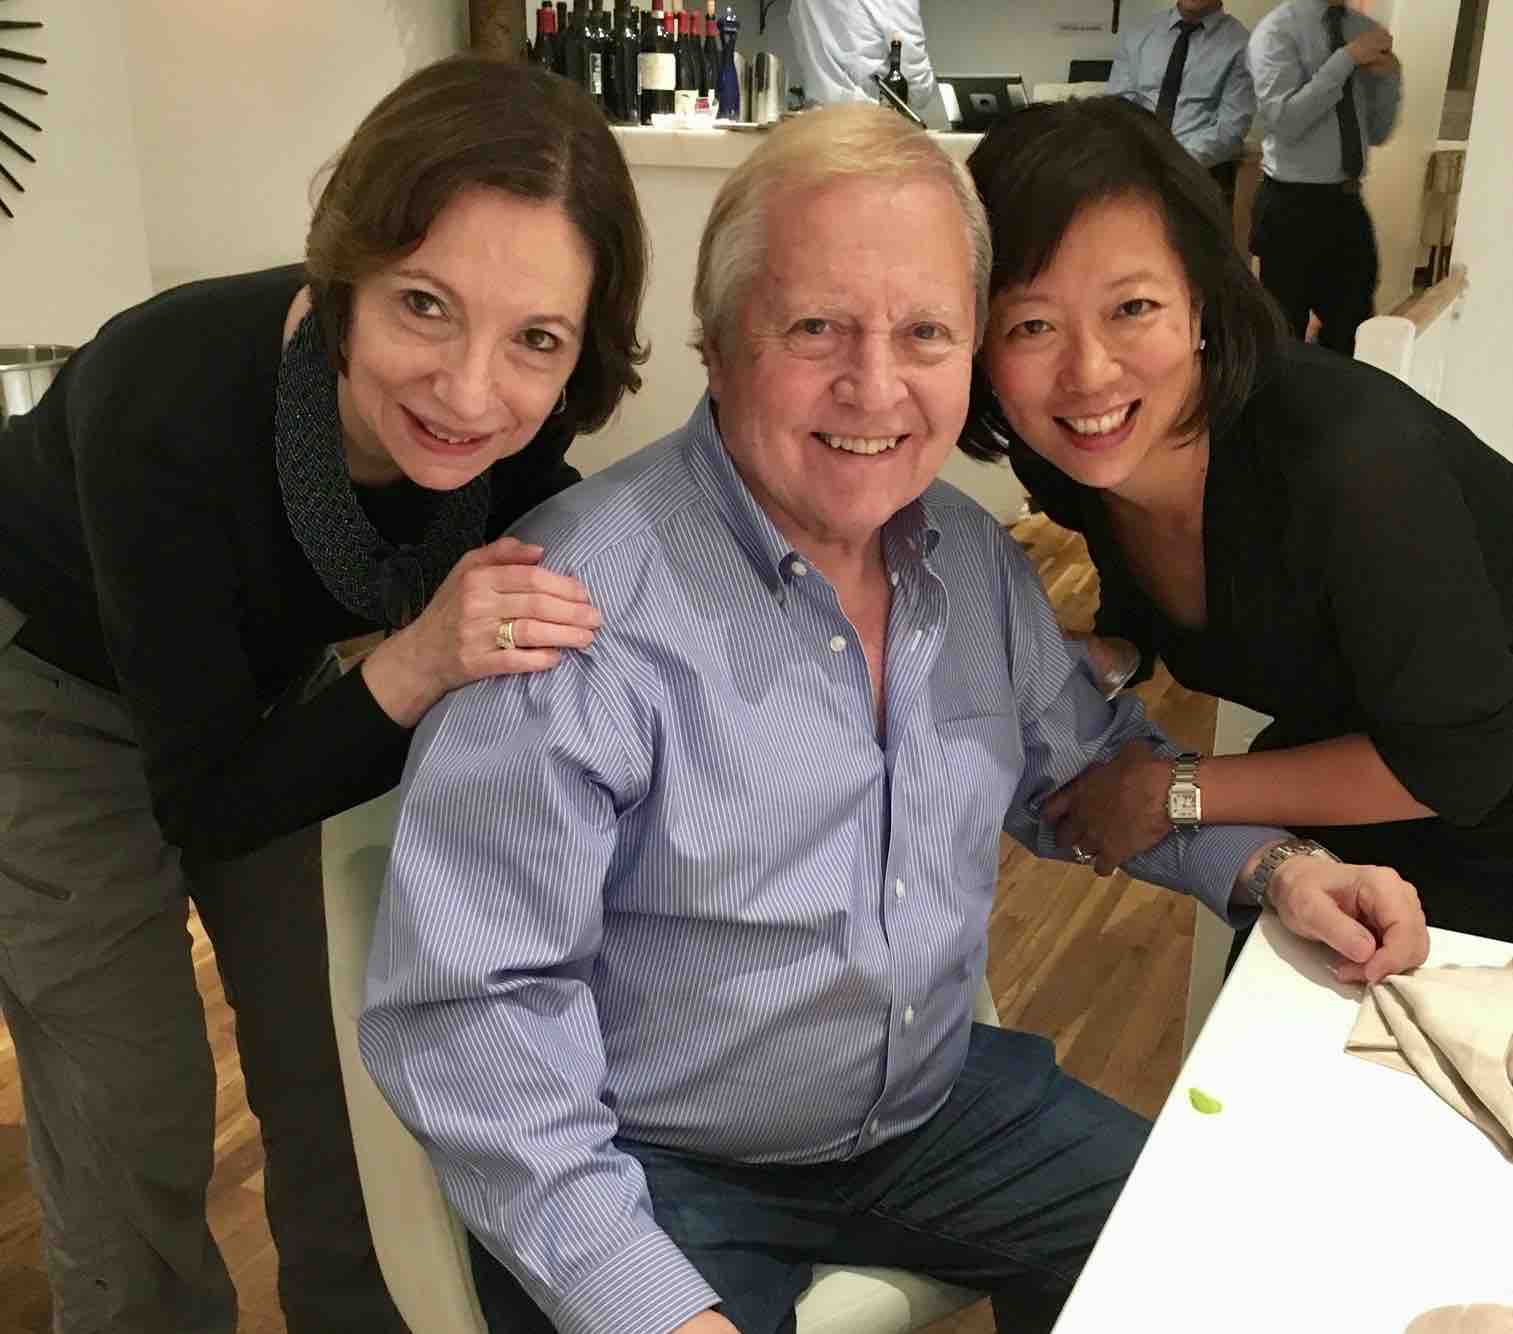 With Joanne and Bruce